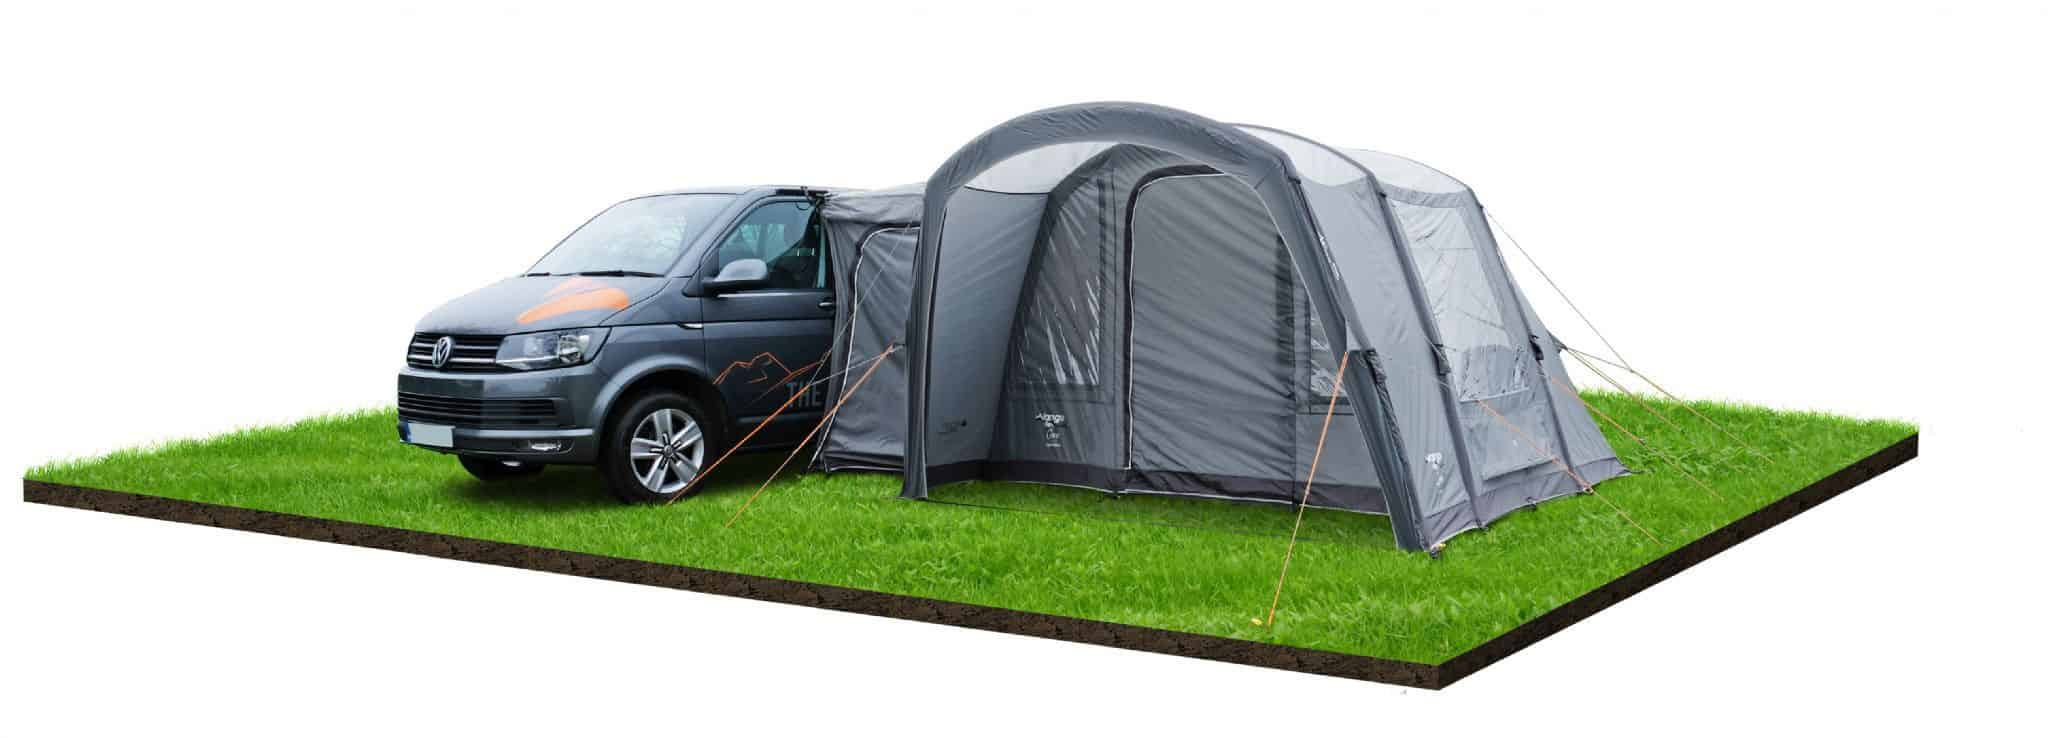 Vango Cove Low Drive Away awning